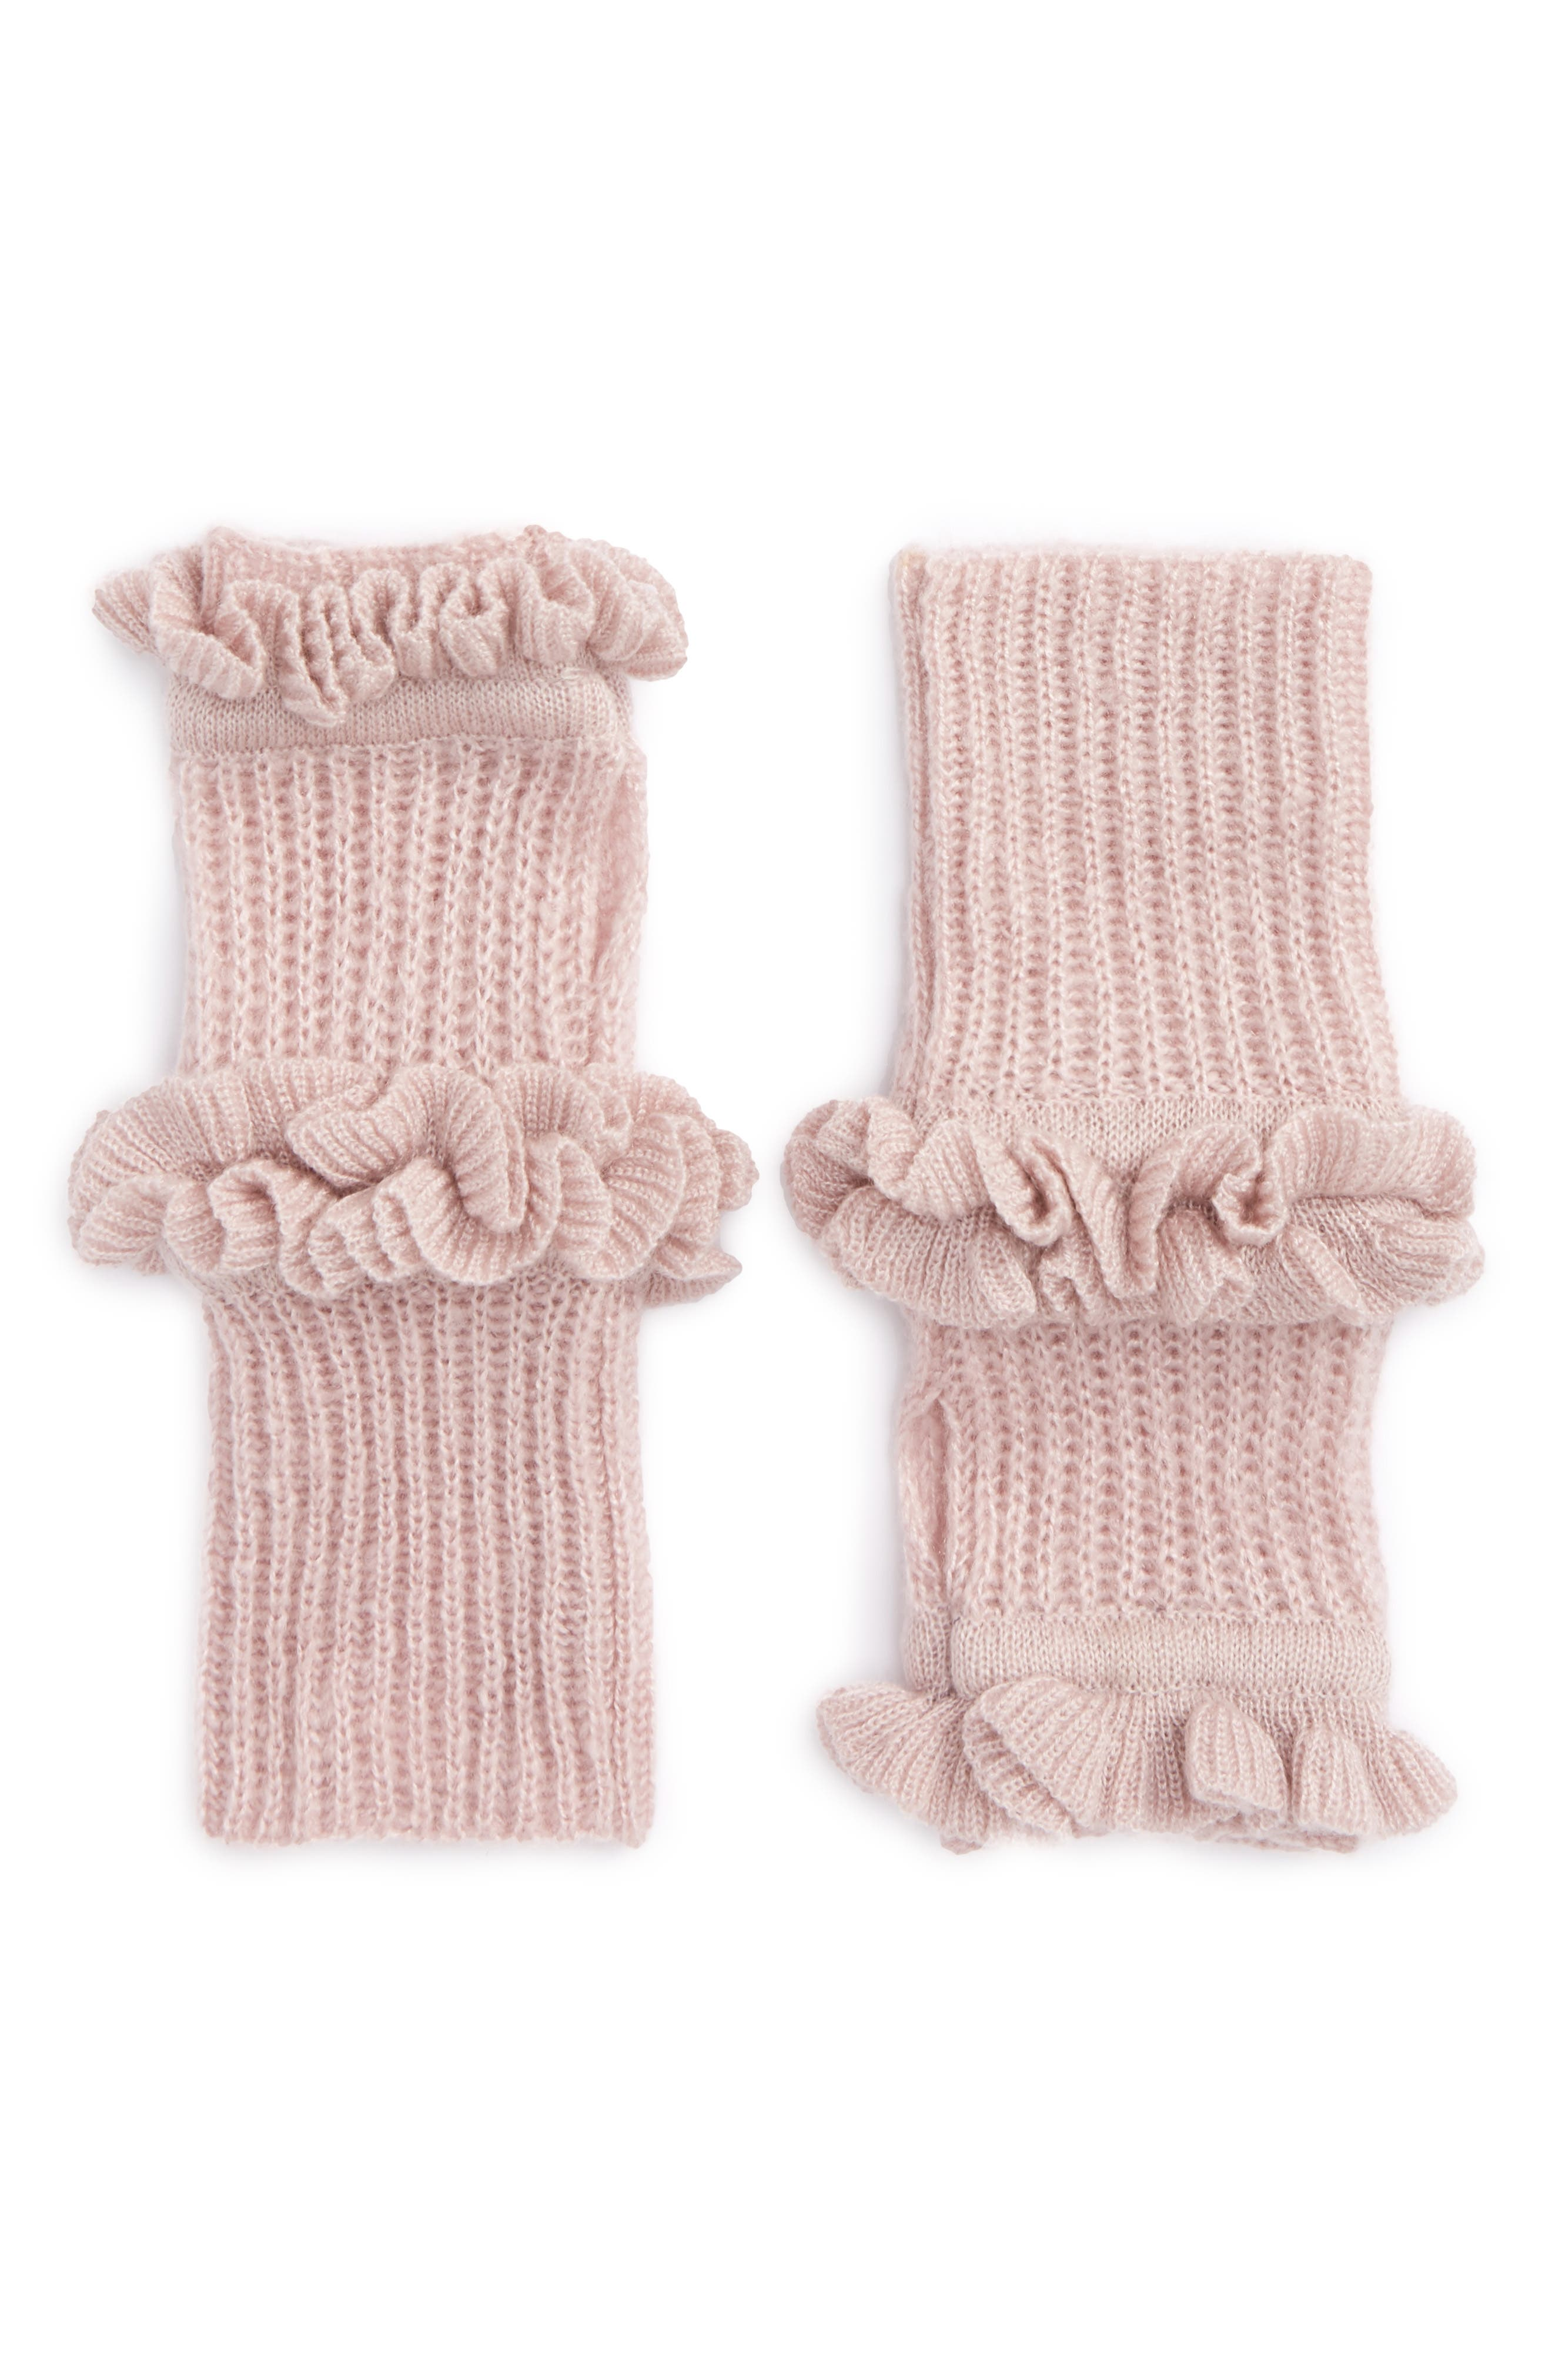 Ruffle Fingerless Gloves,                         Main,                         color, Pale Pink